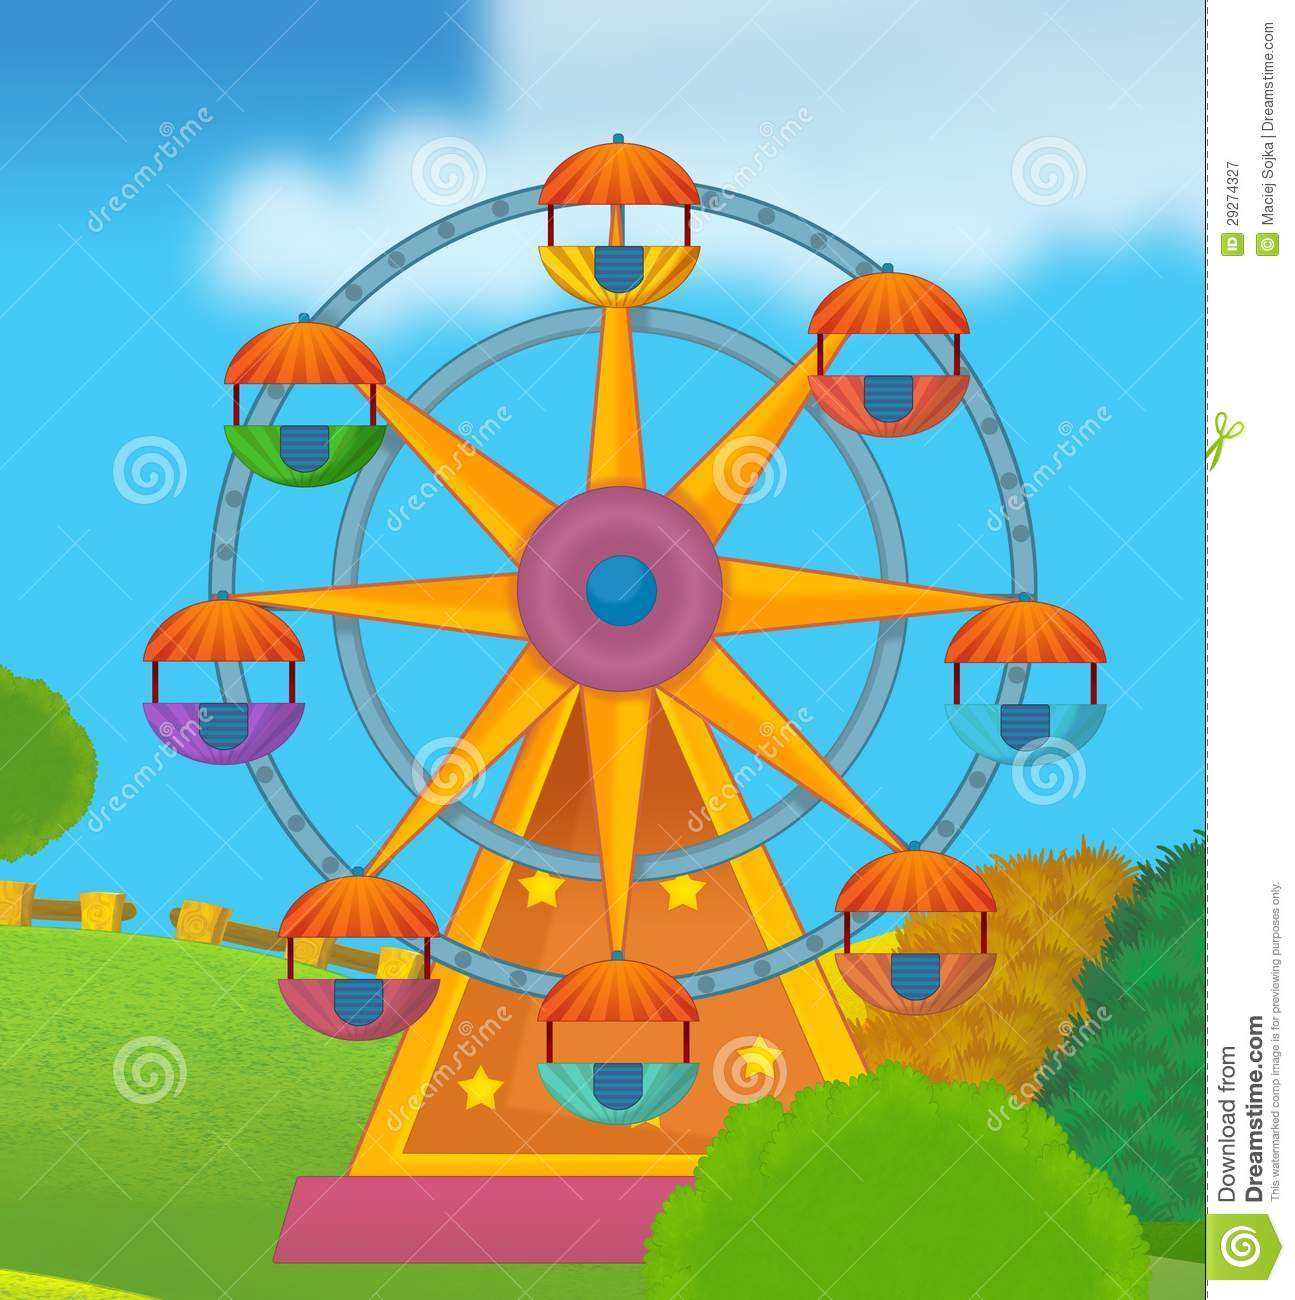 The Funfair Royalty Free Stock Photography